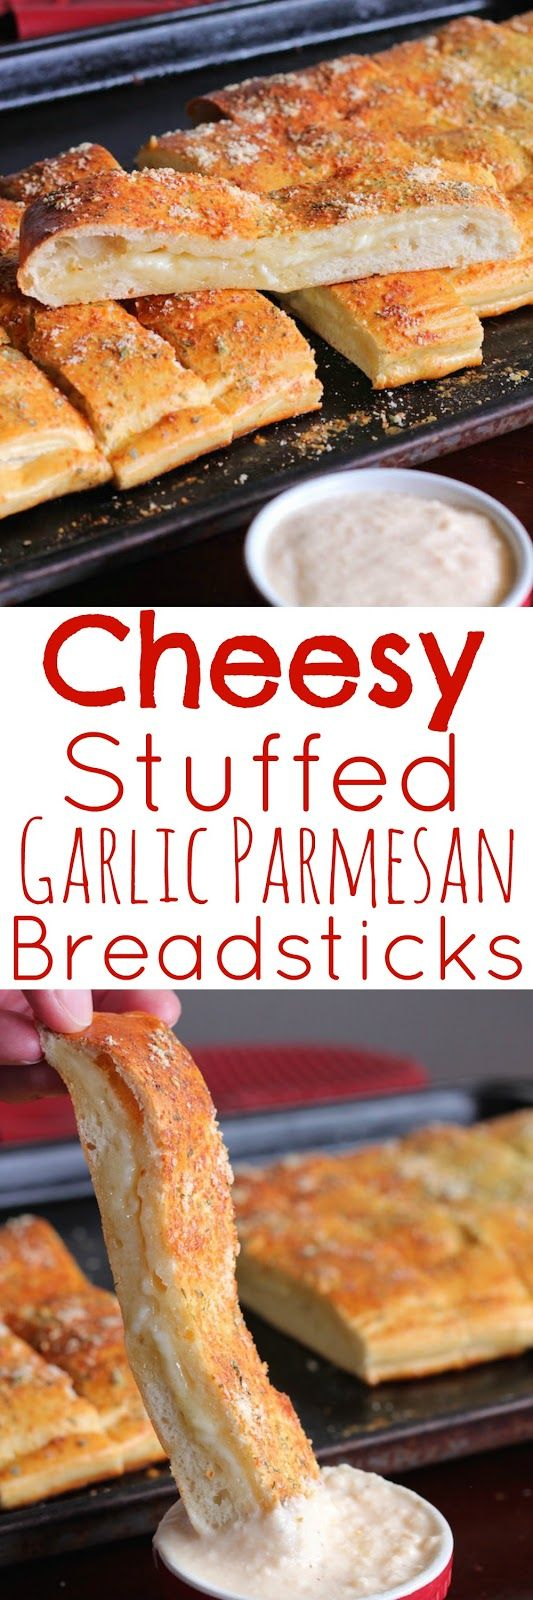 Cheesy Stuffed Garlic Parmesan Breadsticks - These shortcut breadsticks are amazing. Try them dipped in Alfredo sauce. #RhodesBread #FrozenBreadDough